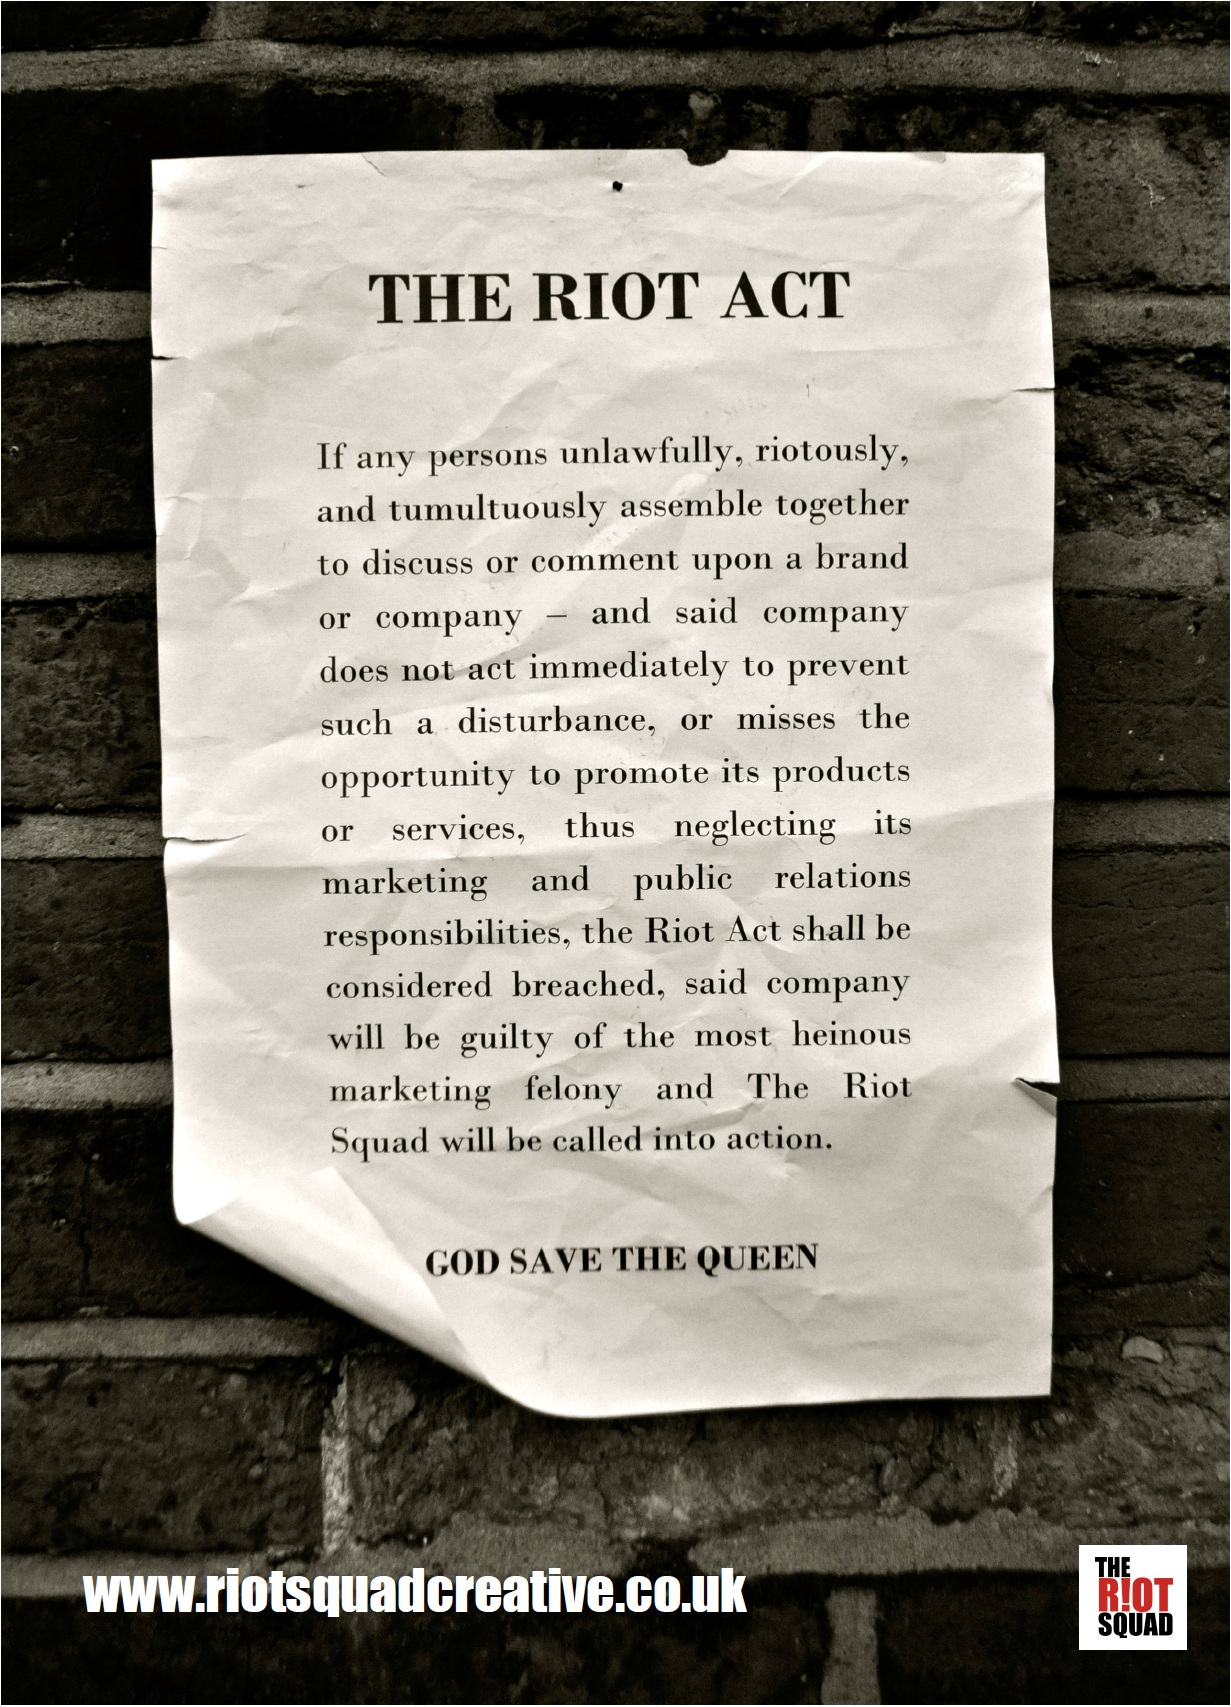 read the riot act Definition of read the riot act to someone from the collins english dictionary subordination when two or more clauses are joined by a conjunction other than and, but, or, or yet, one of the clauses is the main clause the other clauses are subordinate clauses.